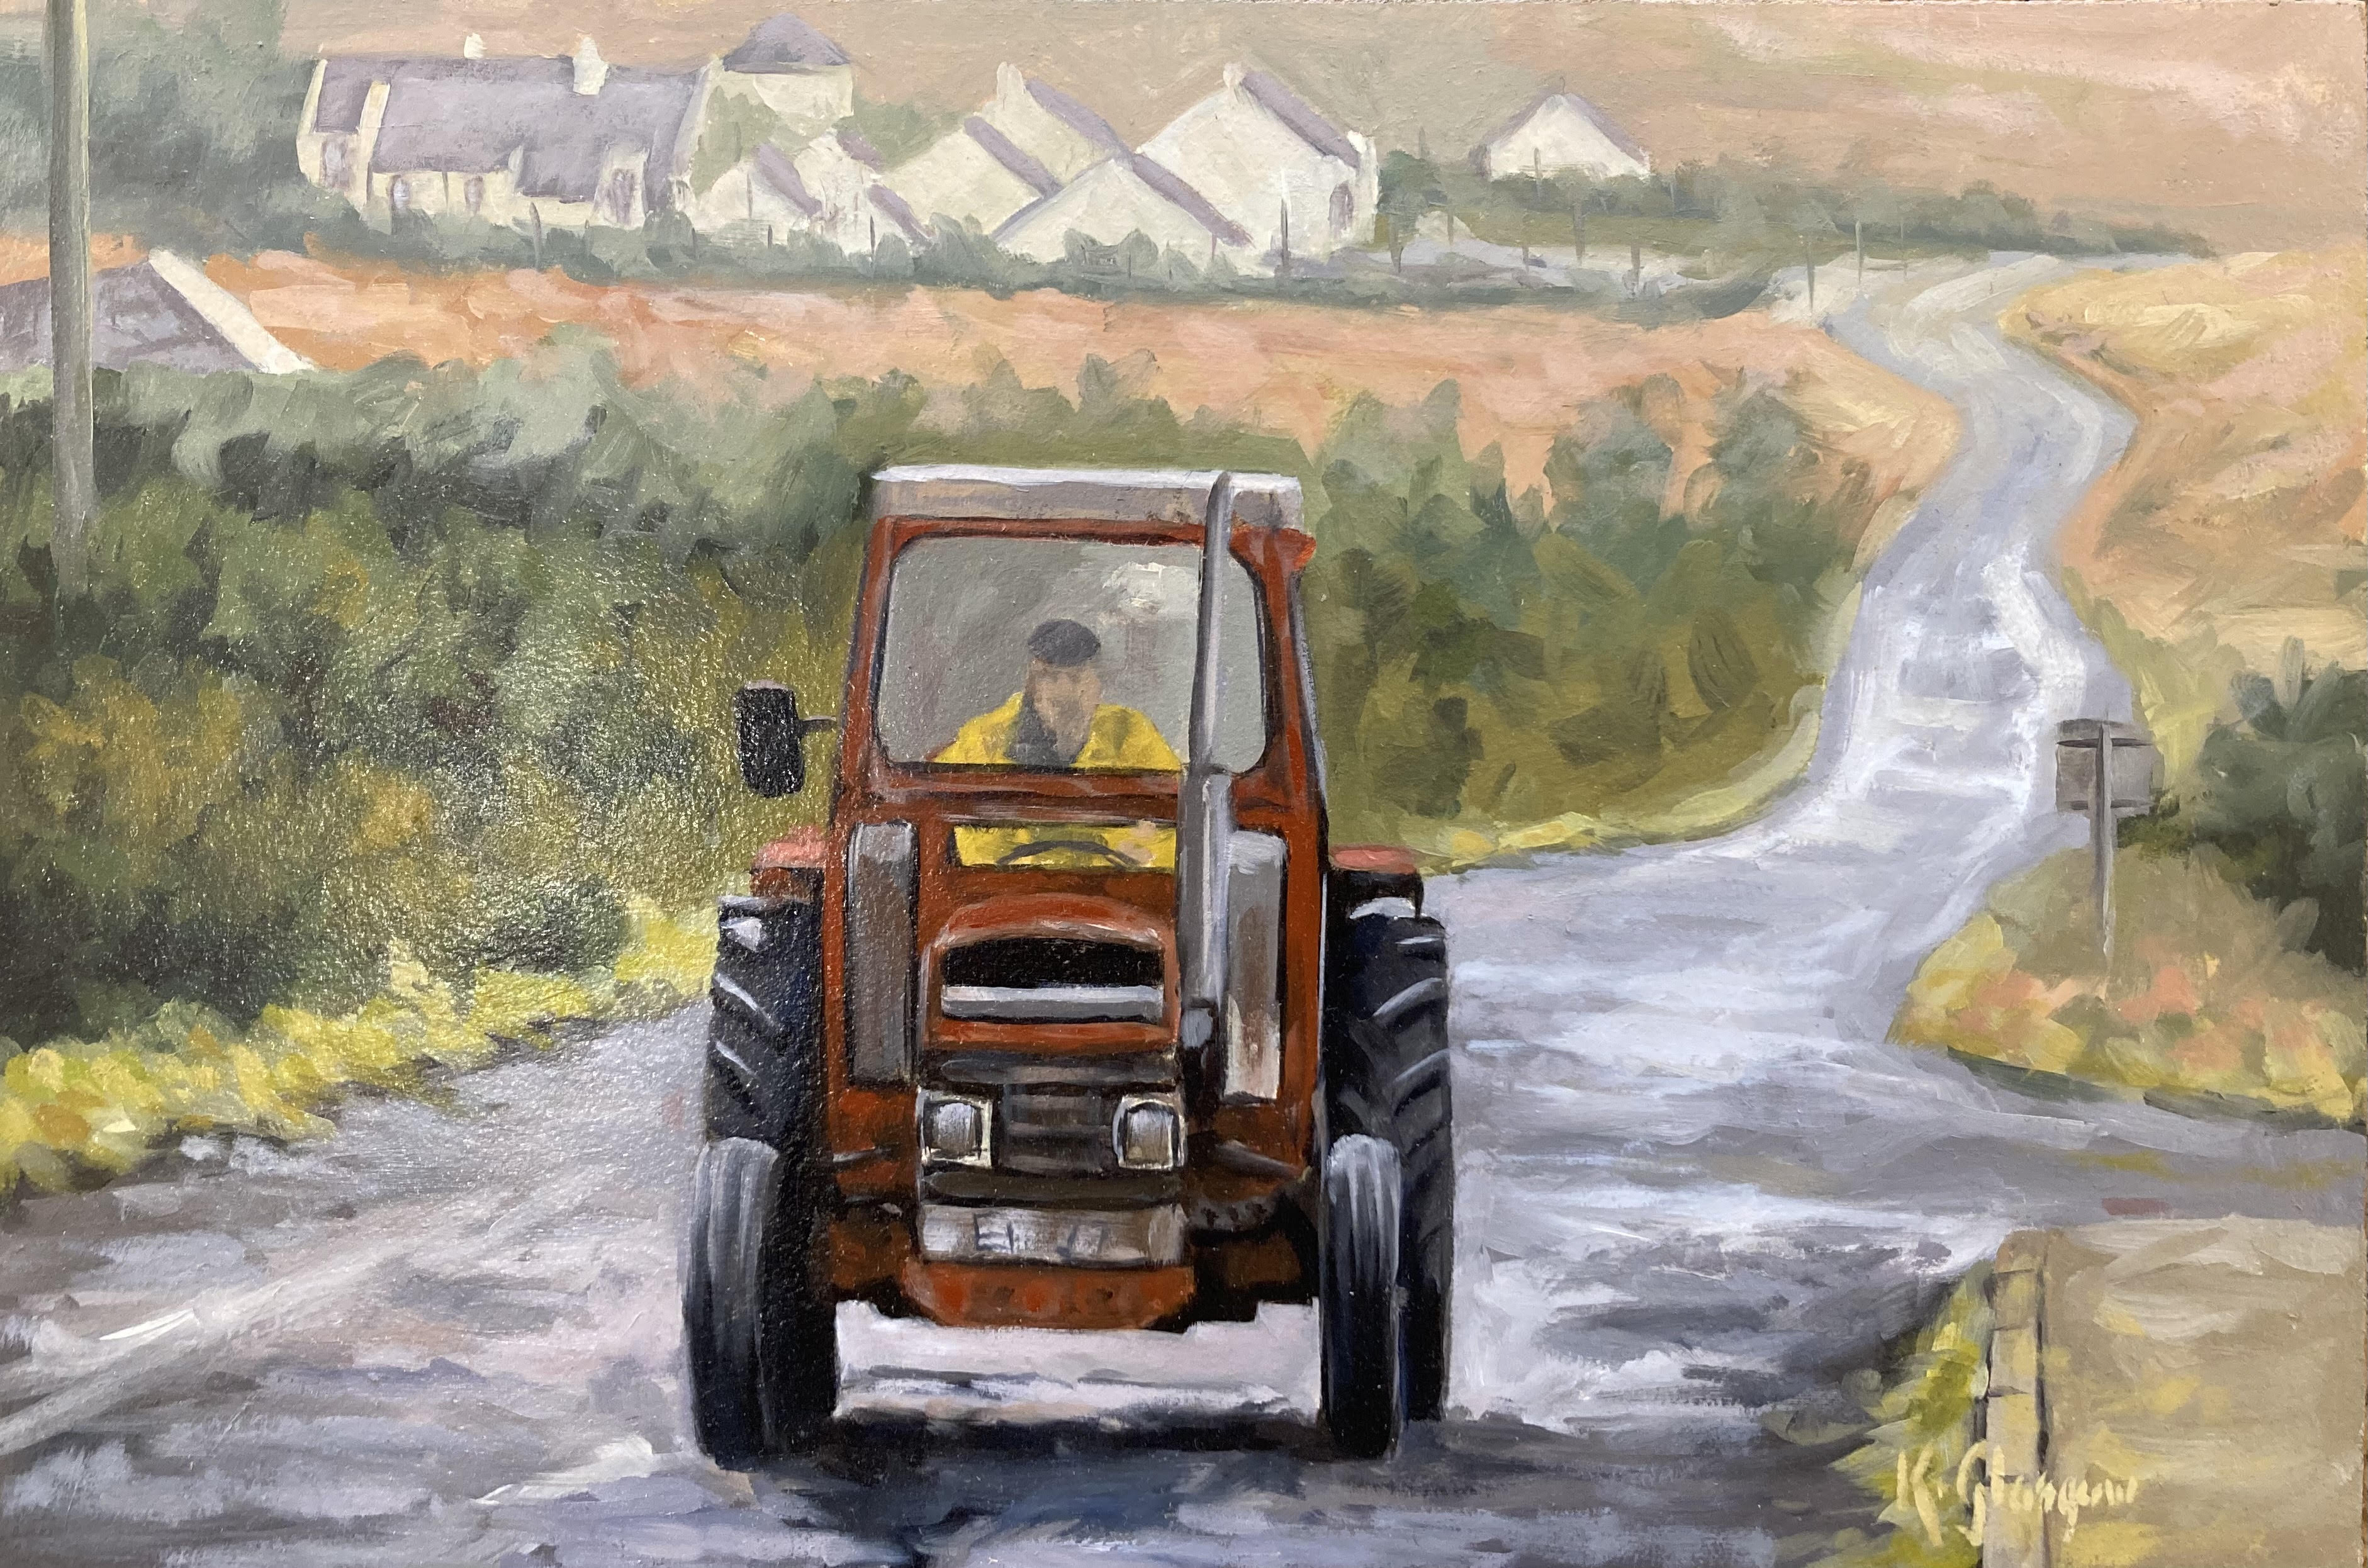 Tractor by Keith Glasgow